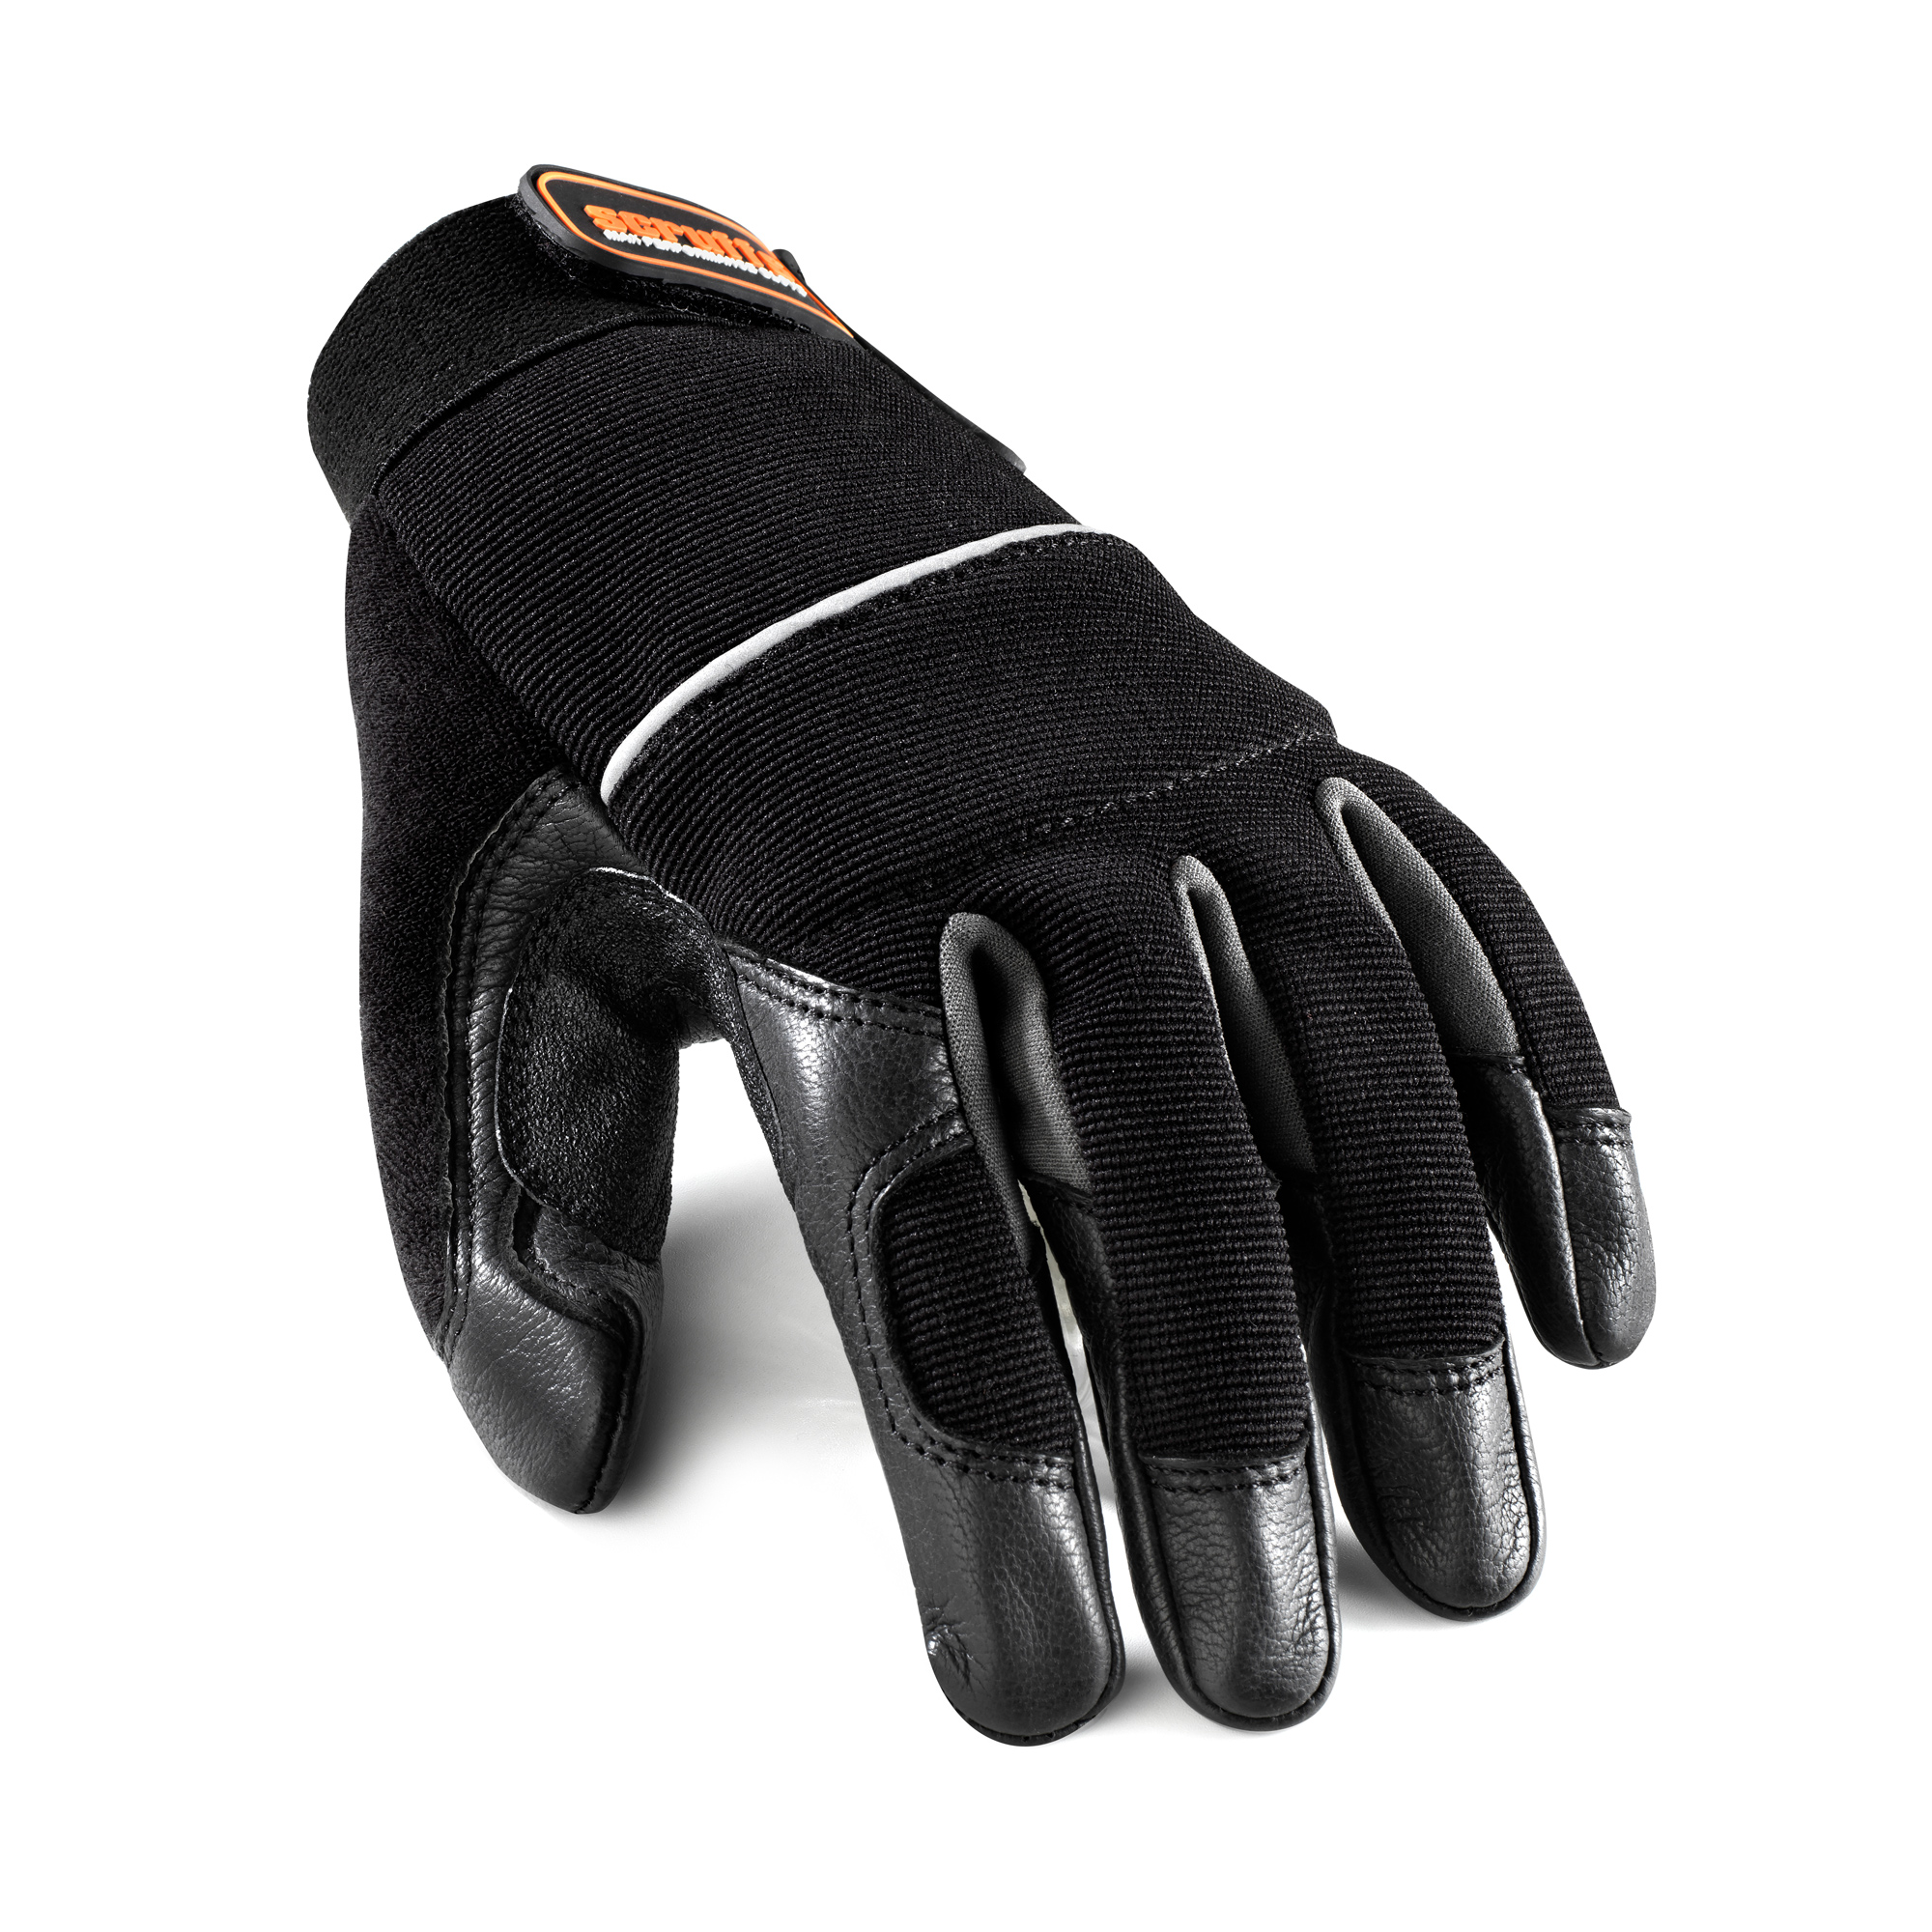 Scruffs Leather Trim Work Gloves